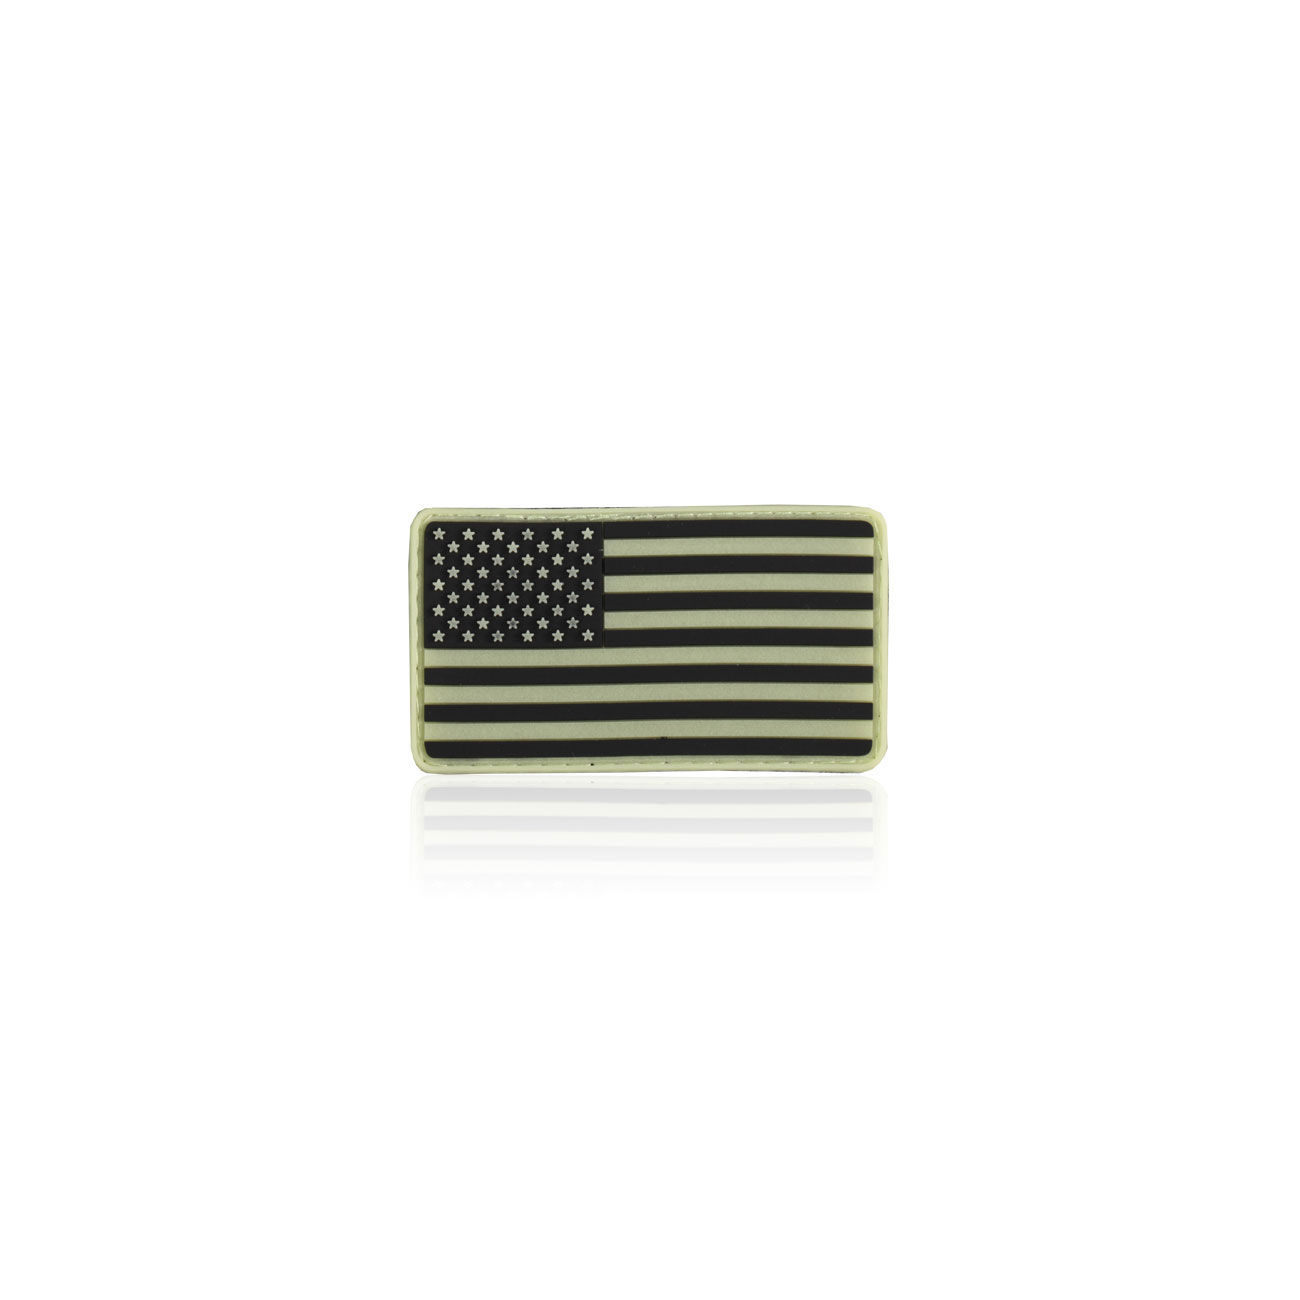 3D Rubber Patch USA nachleutend 0